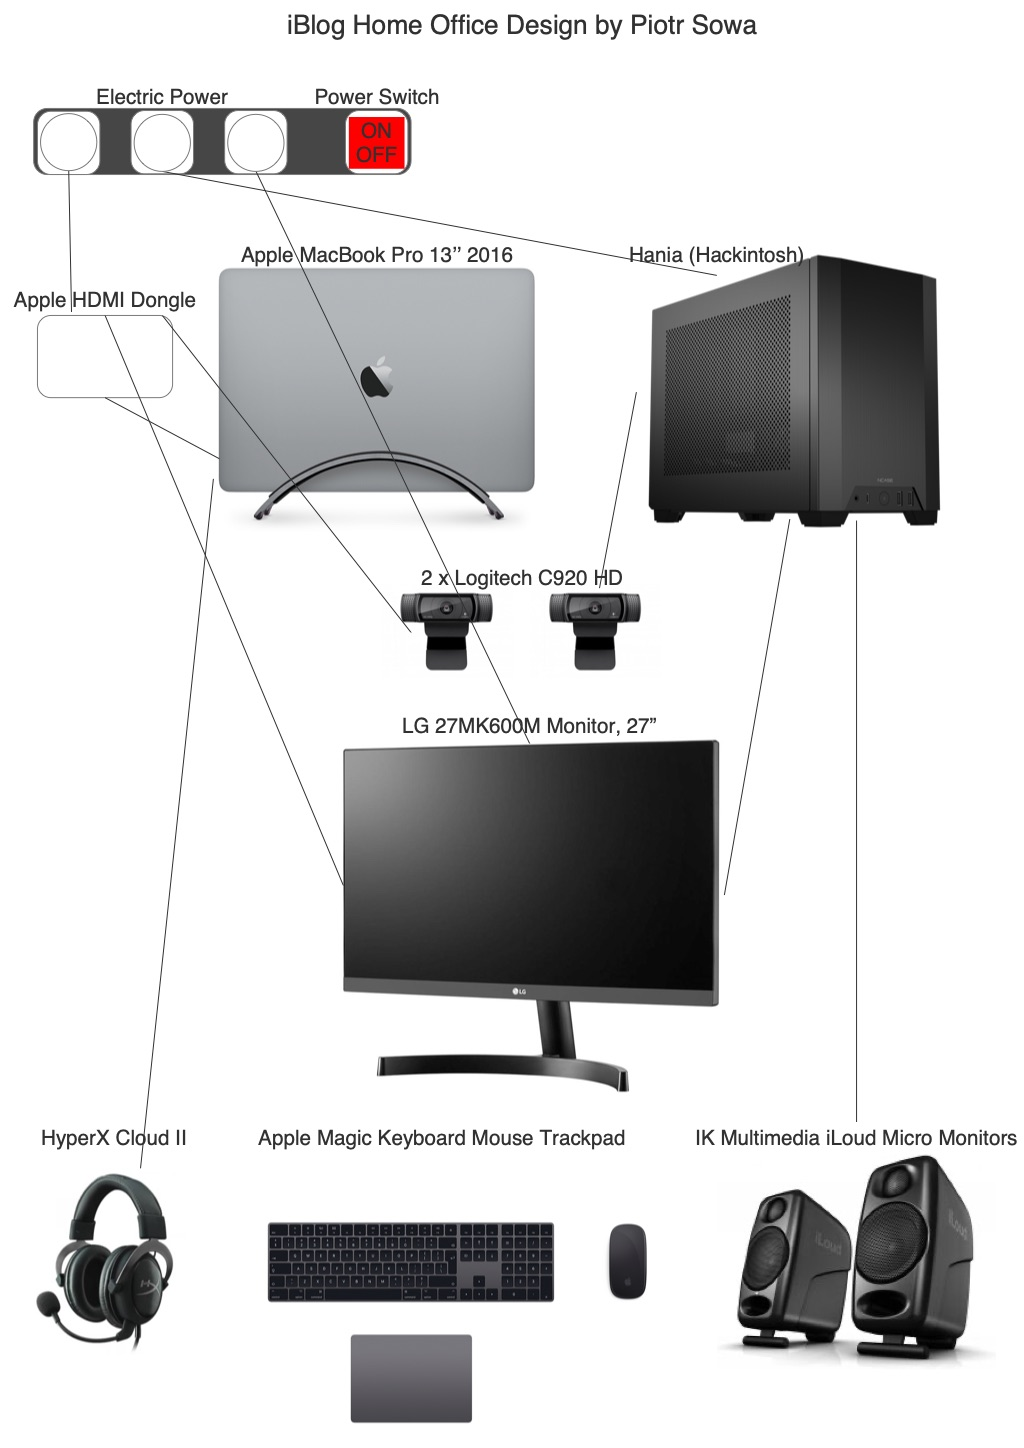 Home Office Diagram